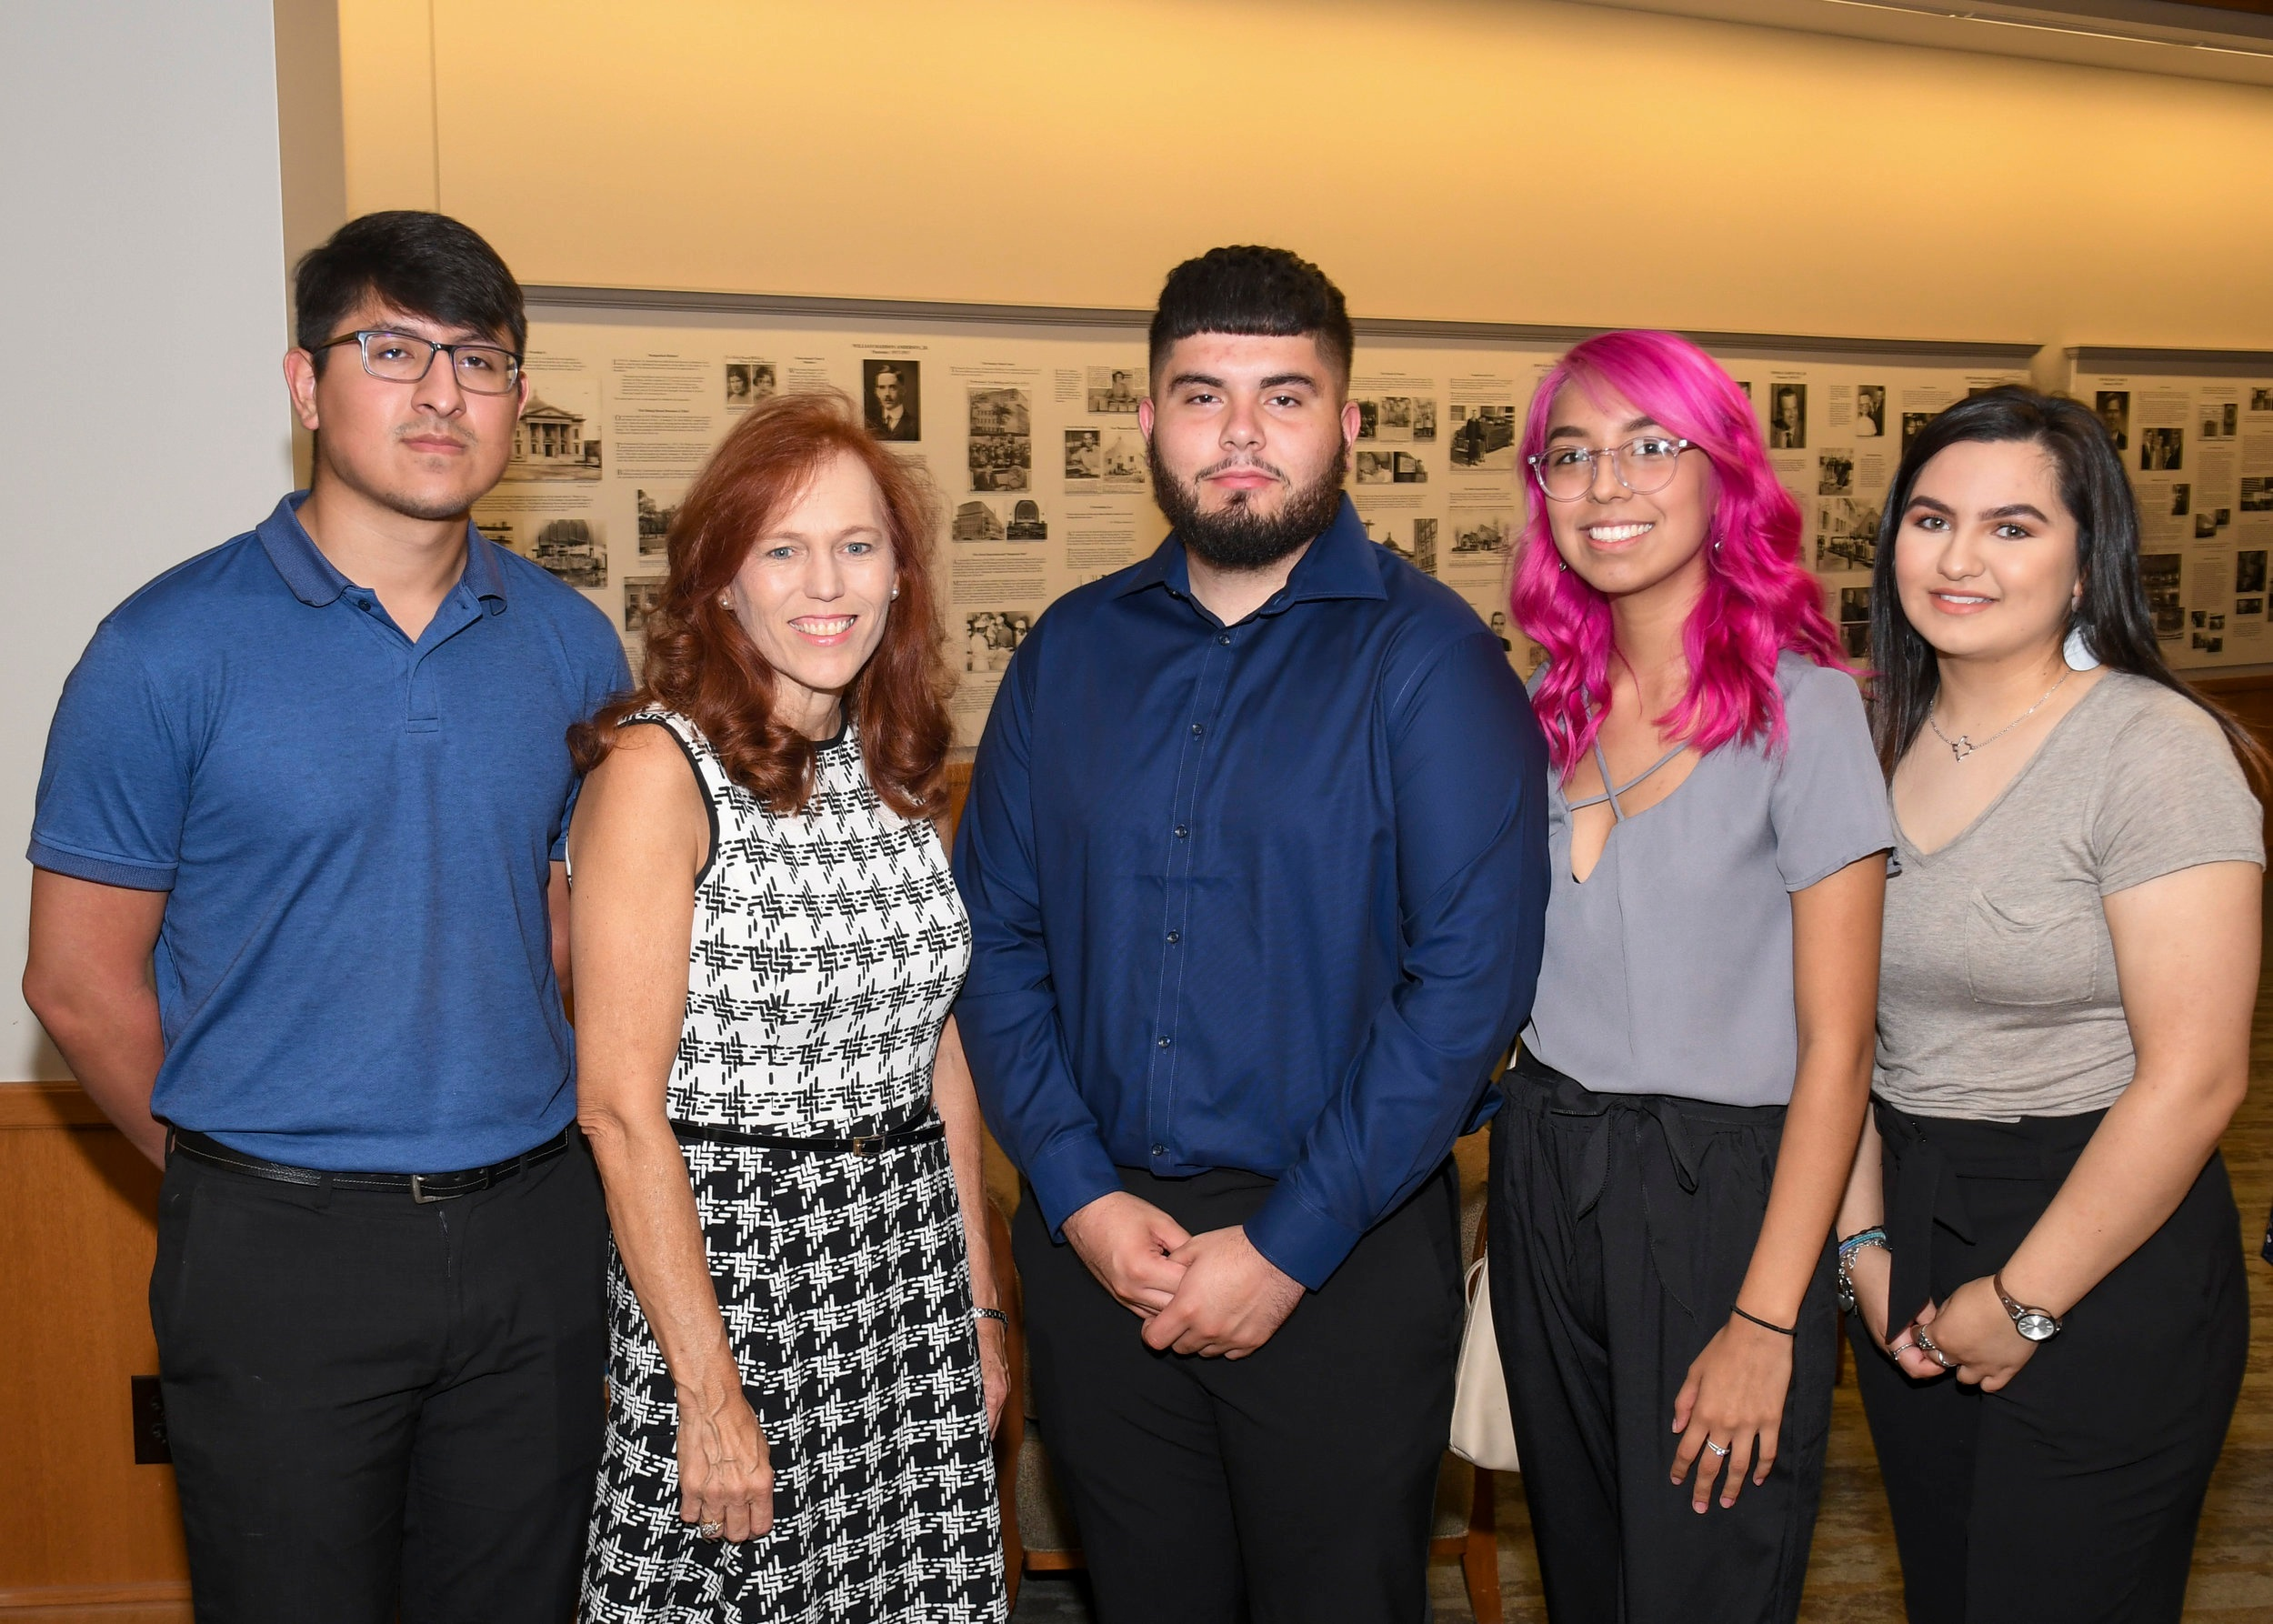 Click the image to view a full gallery of images from Scholarship Sunday 2019.